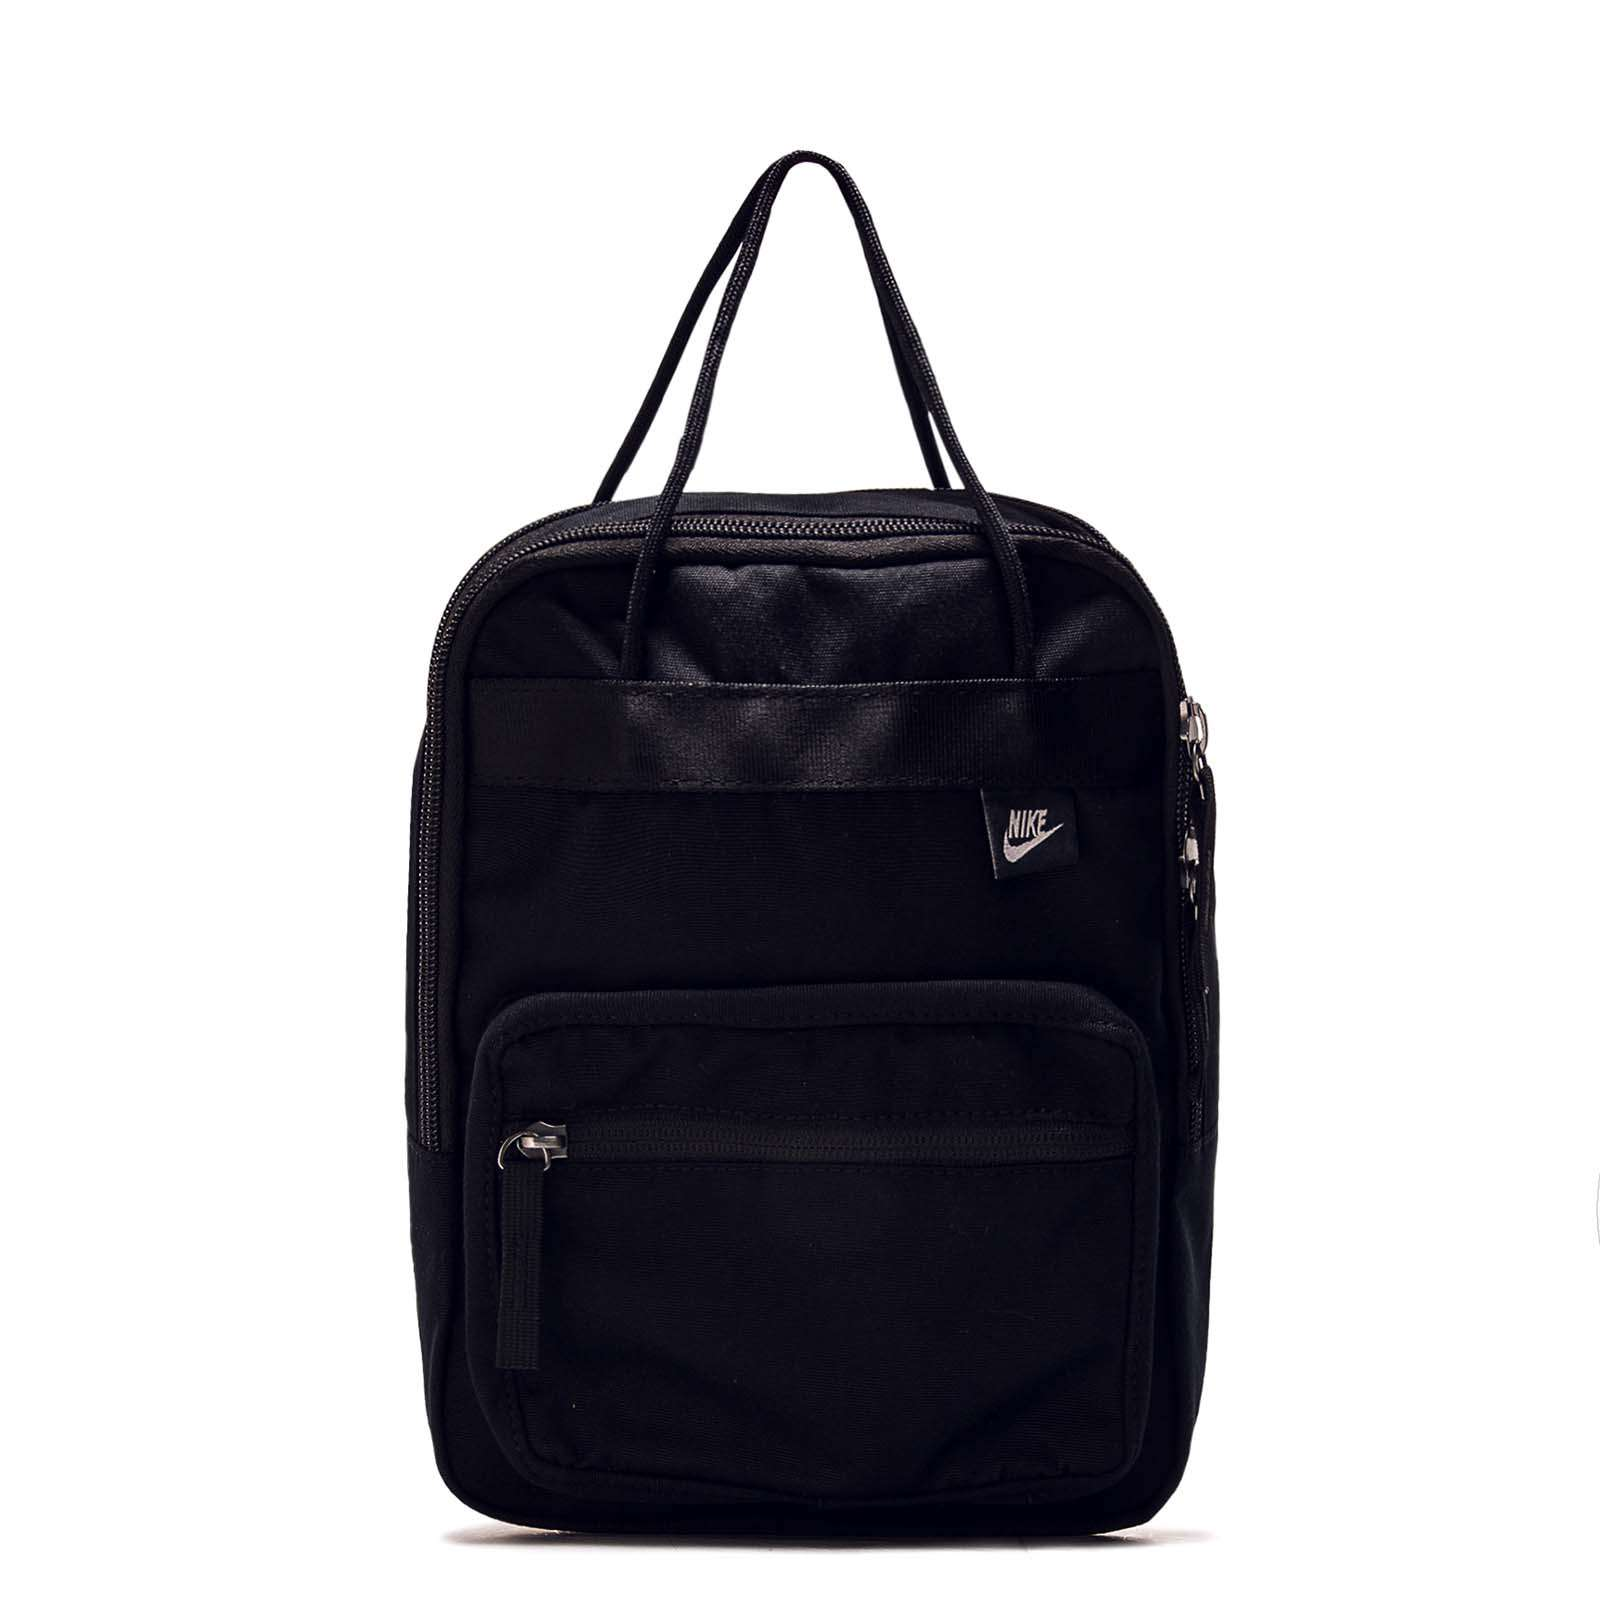 Backpack Mini Tanjun Black